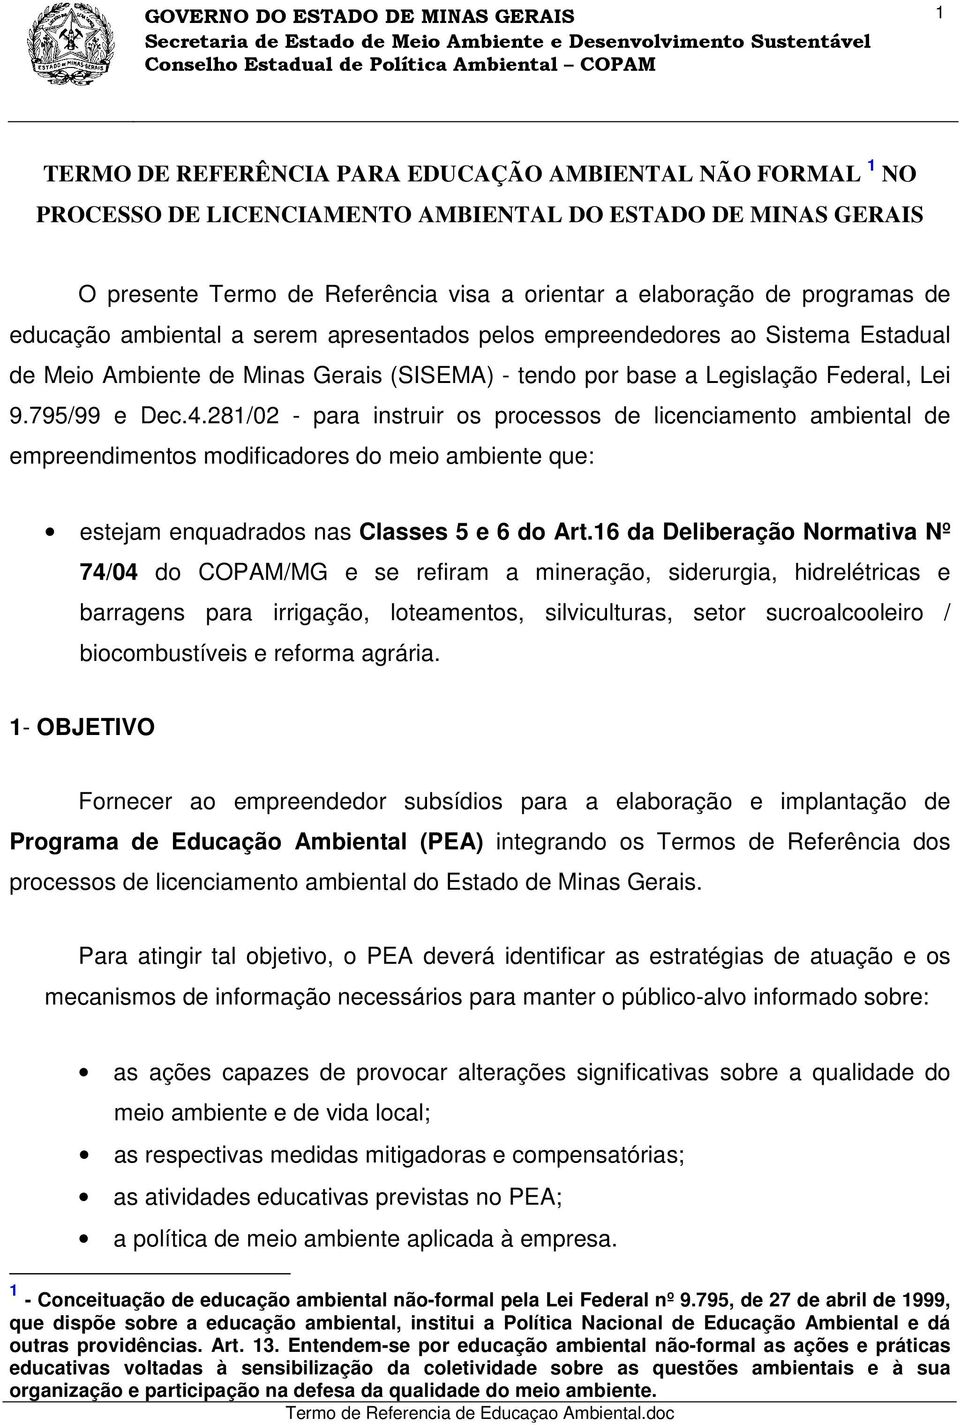 281/02 - para instruir os processos de licenciamento ambiental de empreendimentos modificadores do meio ambiente que: estejam enquadrados nas Classes 5 e 6 do Art.